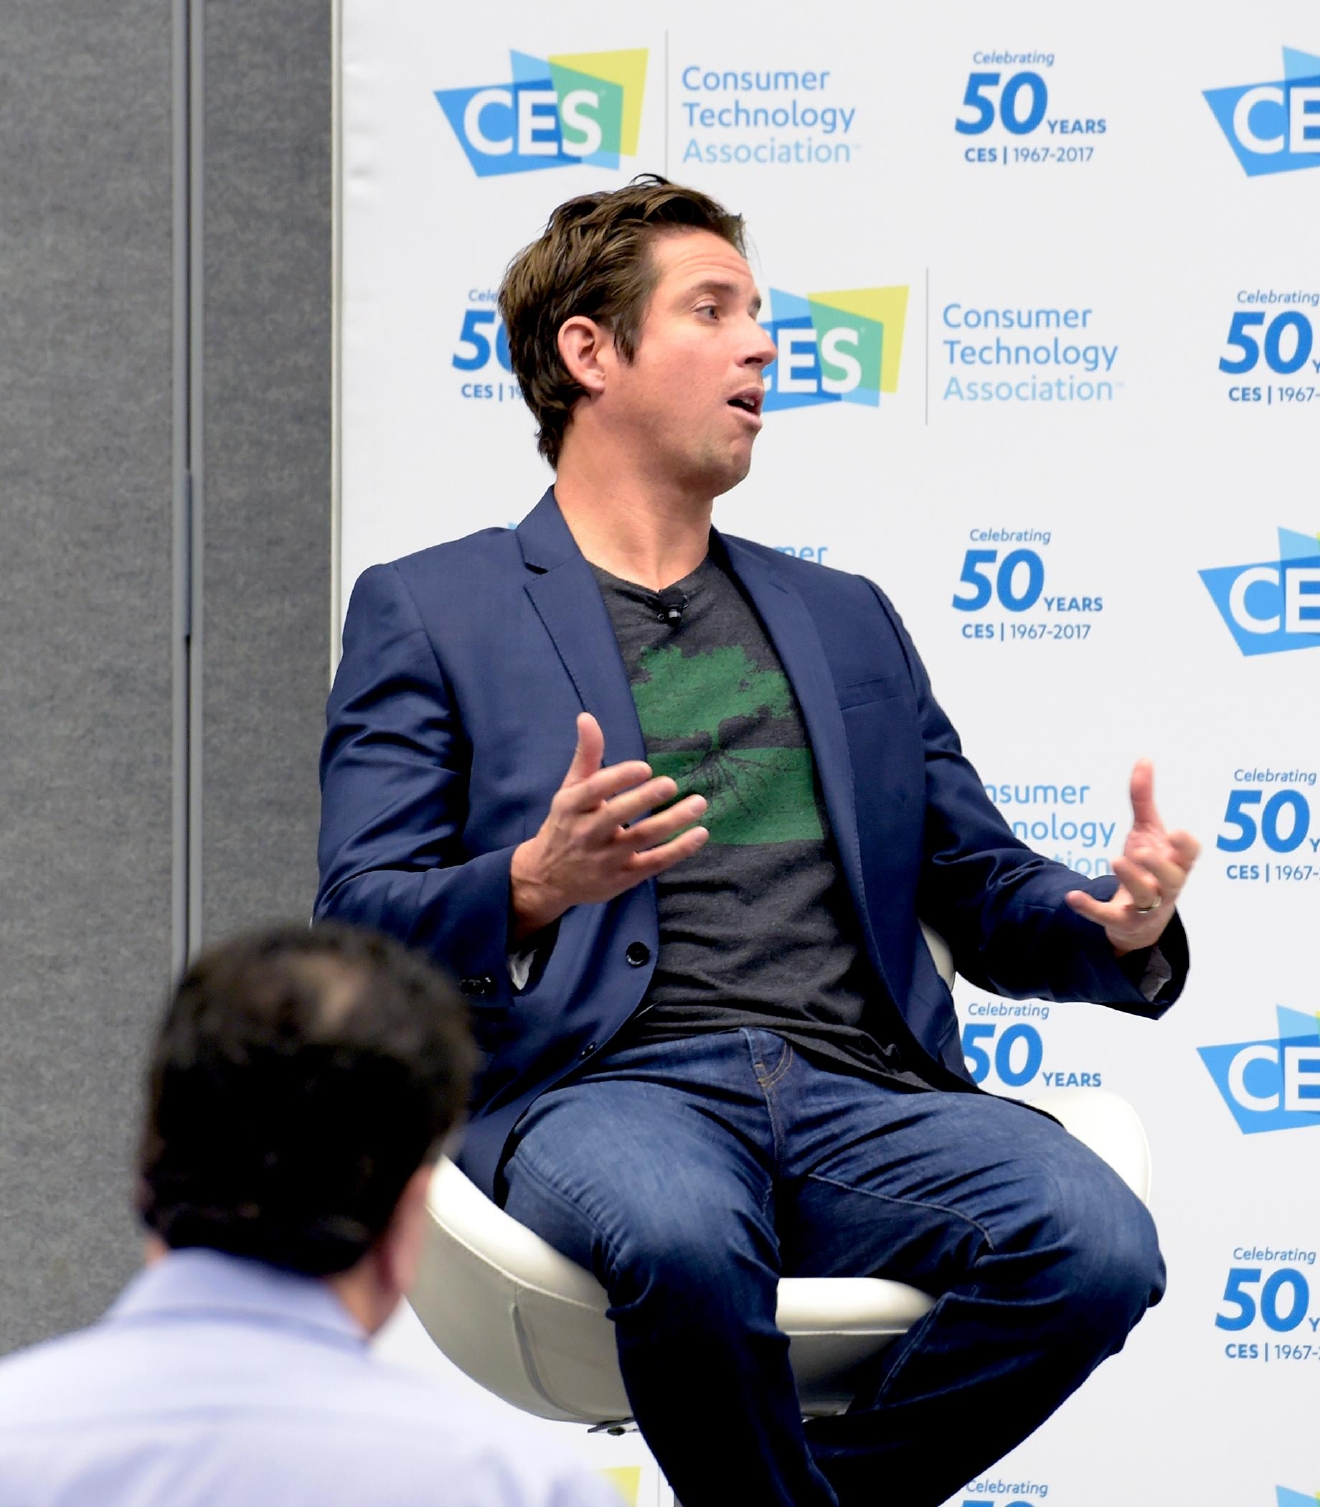 World Trade Center Las Vegas Networking Breakfast with keynote speaker Nick Woodman, President/CEO of GoPro. Friday, January 6, 2017. CREDIT: Glenn Pinkerton/Las Vegas News Bureau